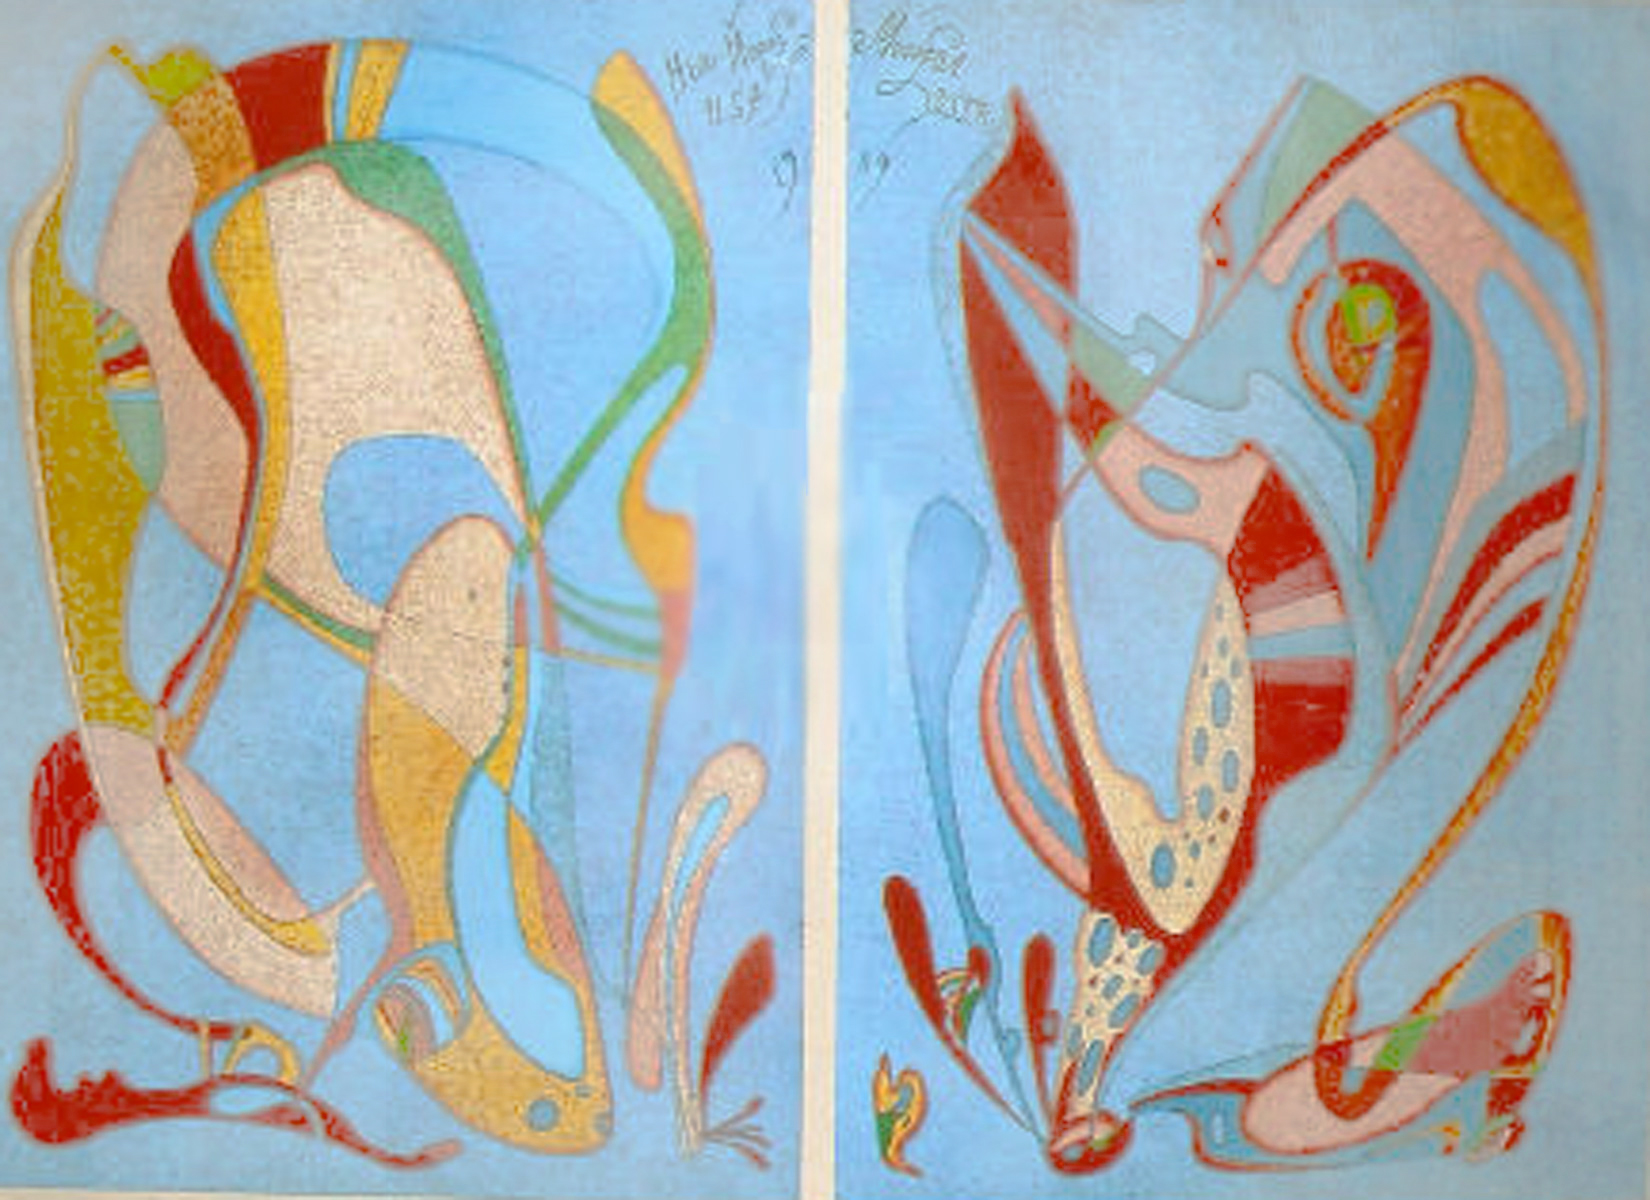 Moscow Museum Commemorative Suite Diptych  1989